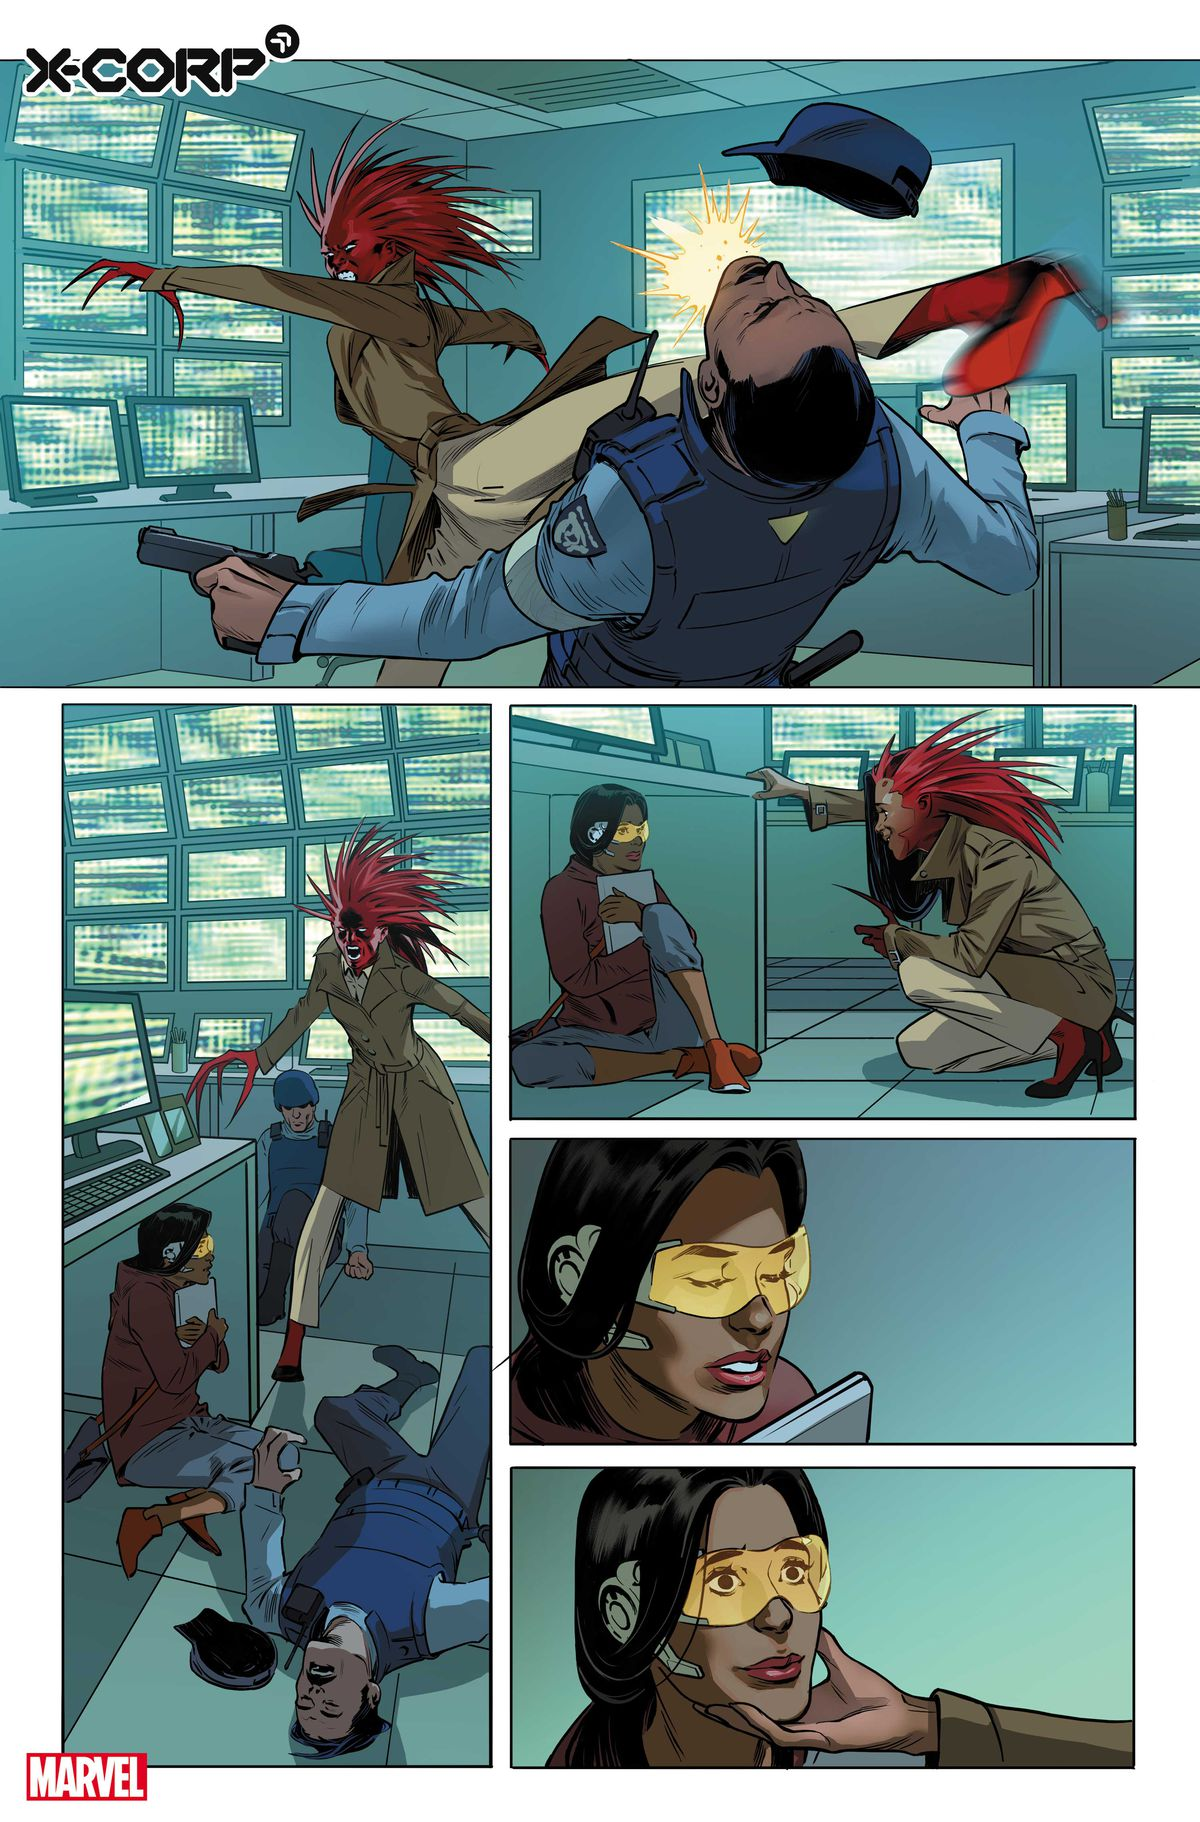 Monet St. Croix Saves Trinary in Preview of X-Corp # 1, Marvel Comics (2021)